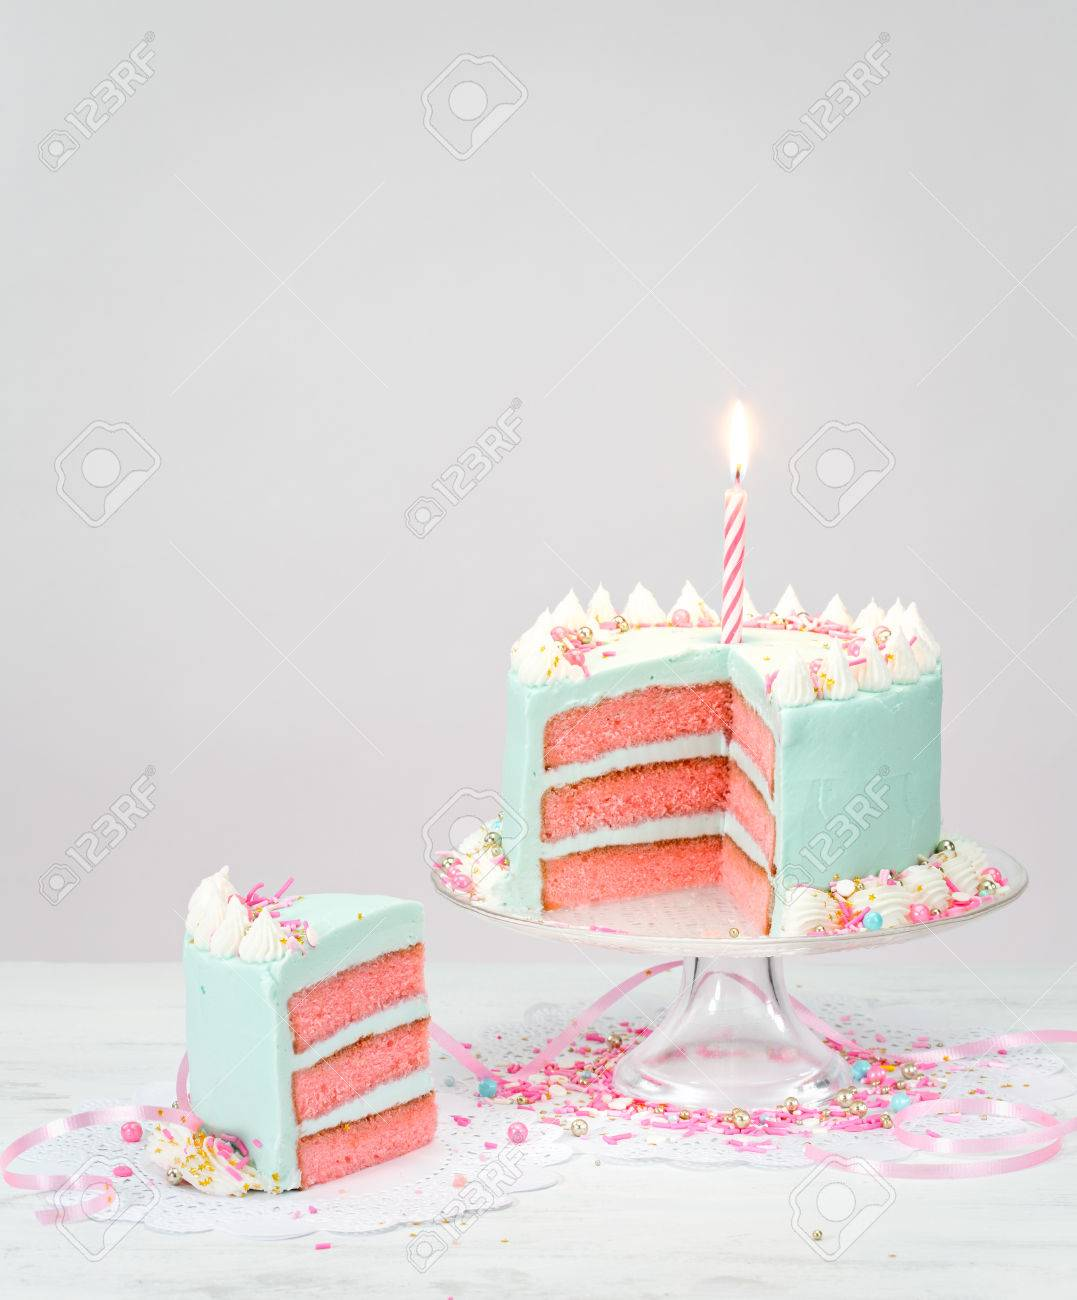 Pastel Blue Birthday Cake Over White Background With Pink Layers And Sprinkles Stock Photo